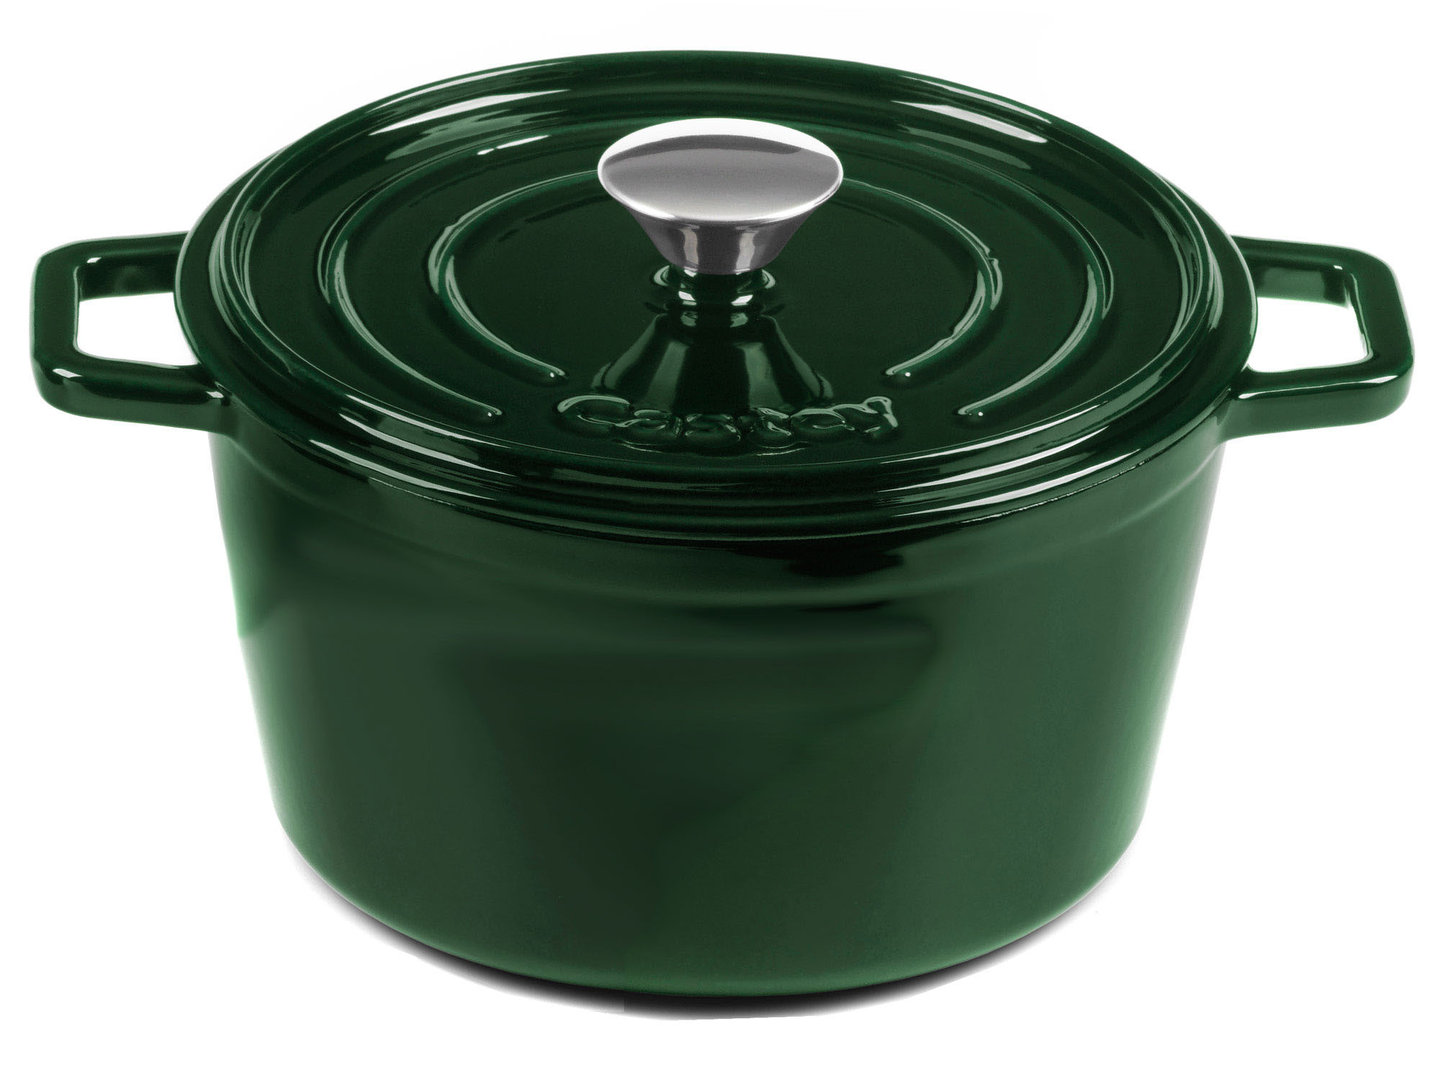 CASTEY Gusseisen Topf COCOTTE 22 cm JADE Emaille